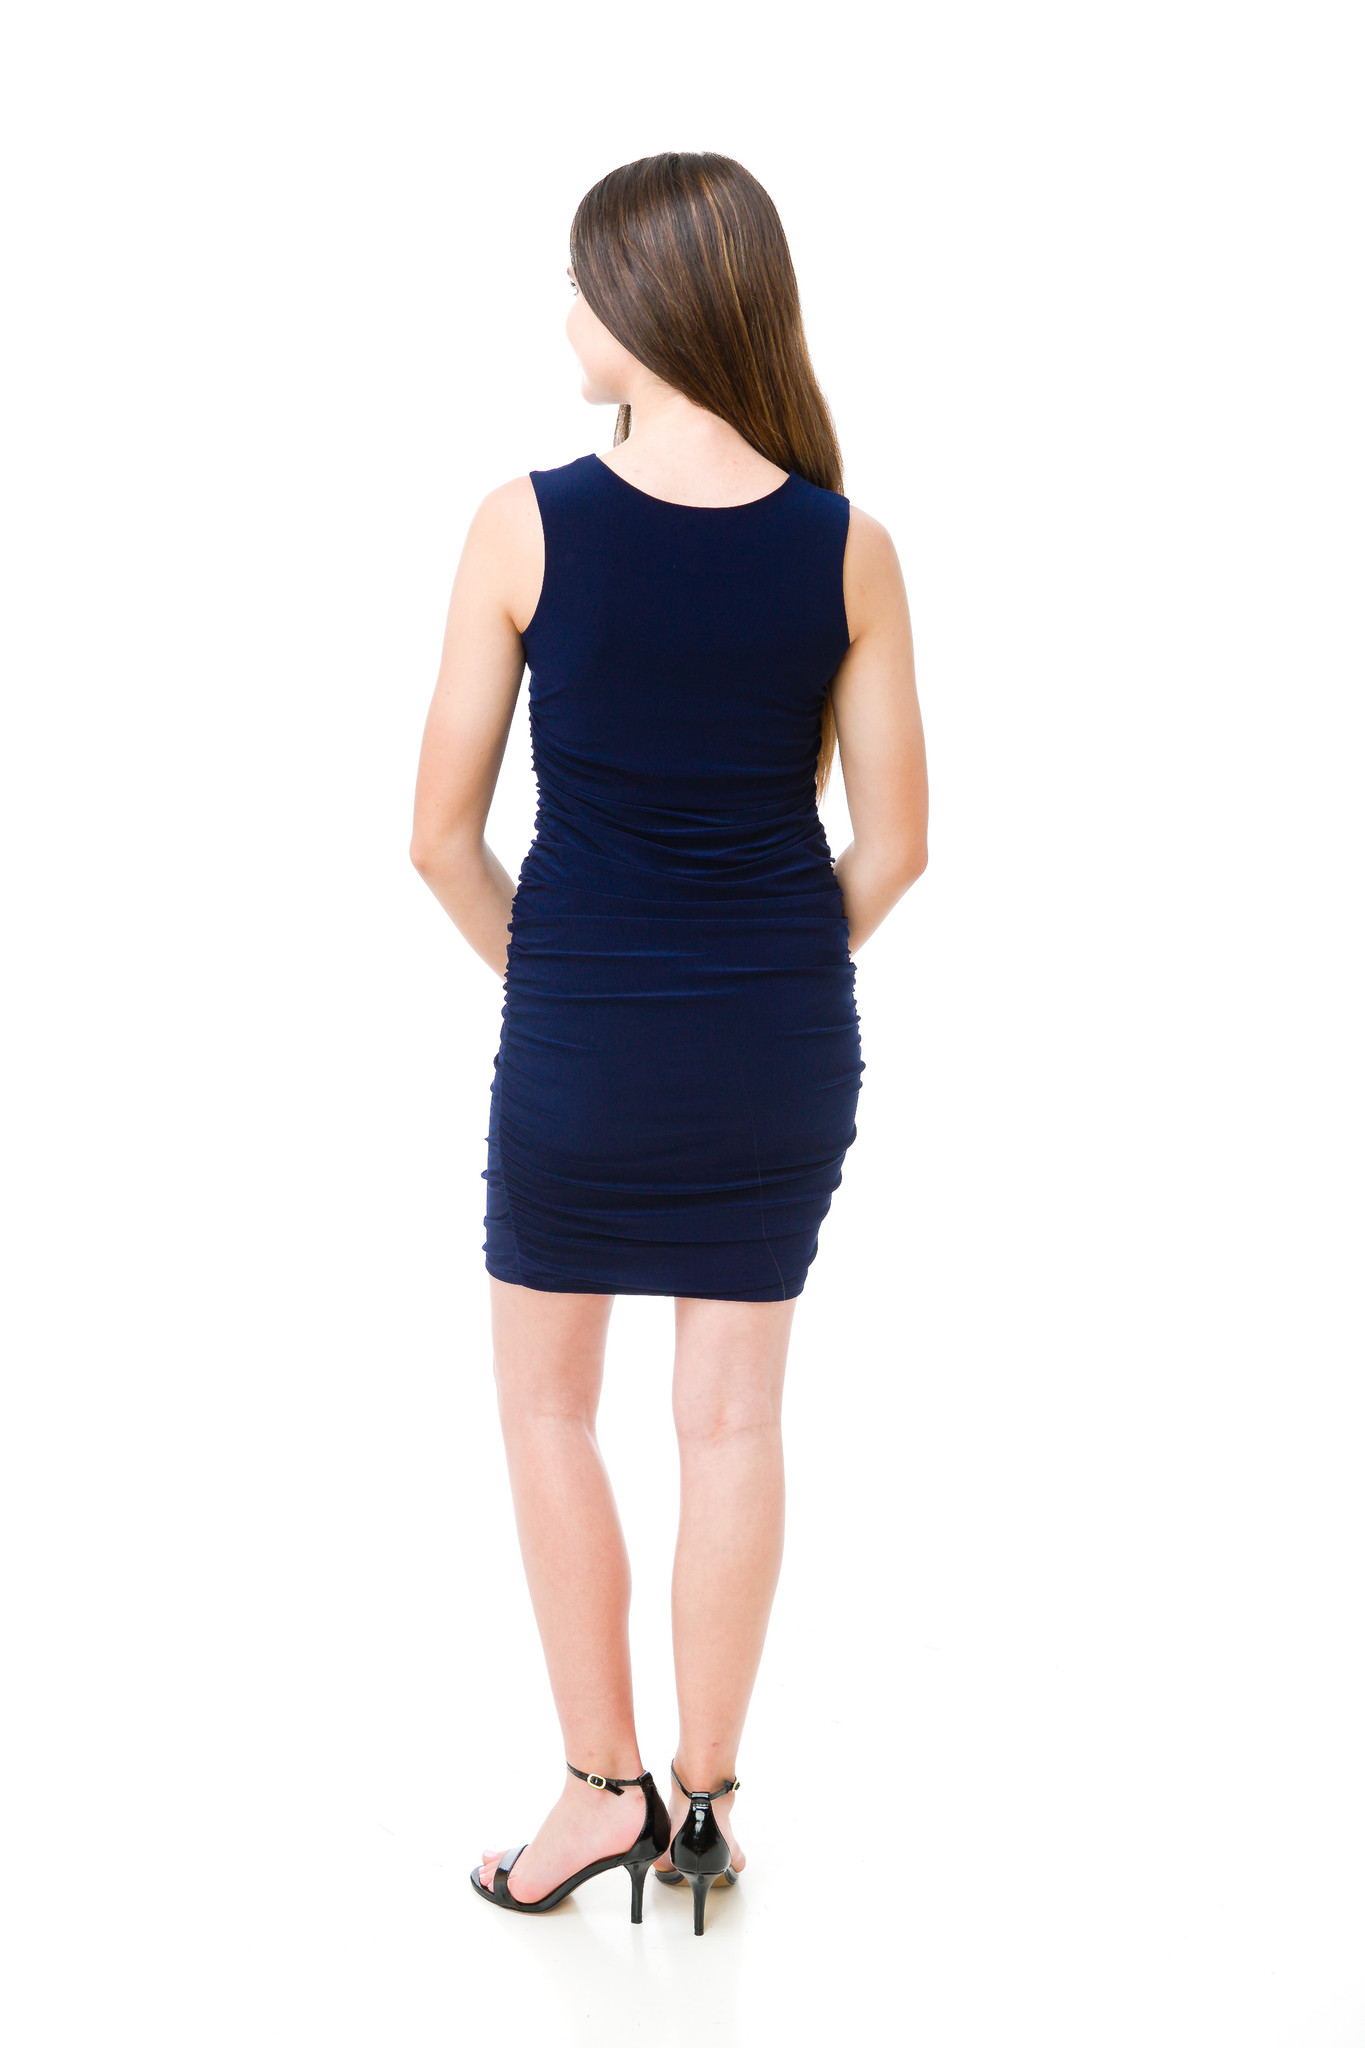 Tween Girls Navy Ruched Fitted Dress in Longer Length back view. Double lined.